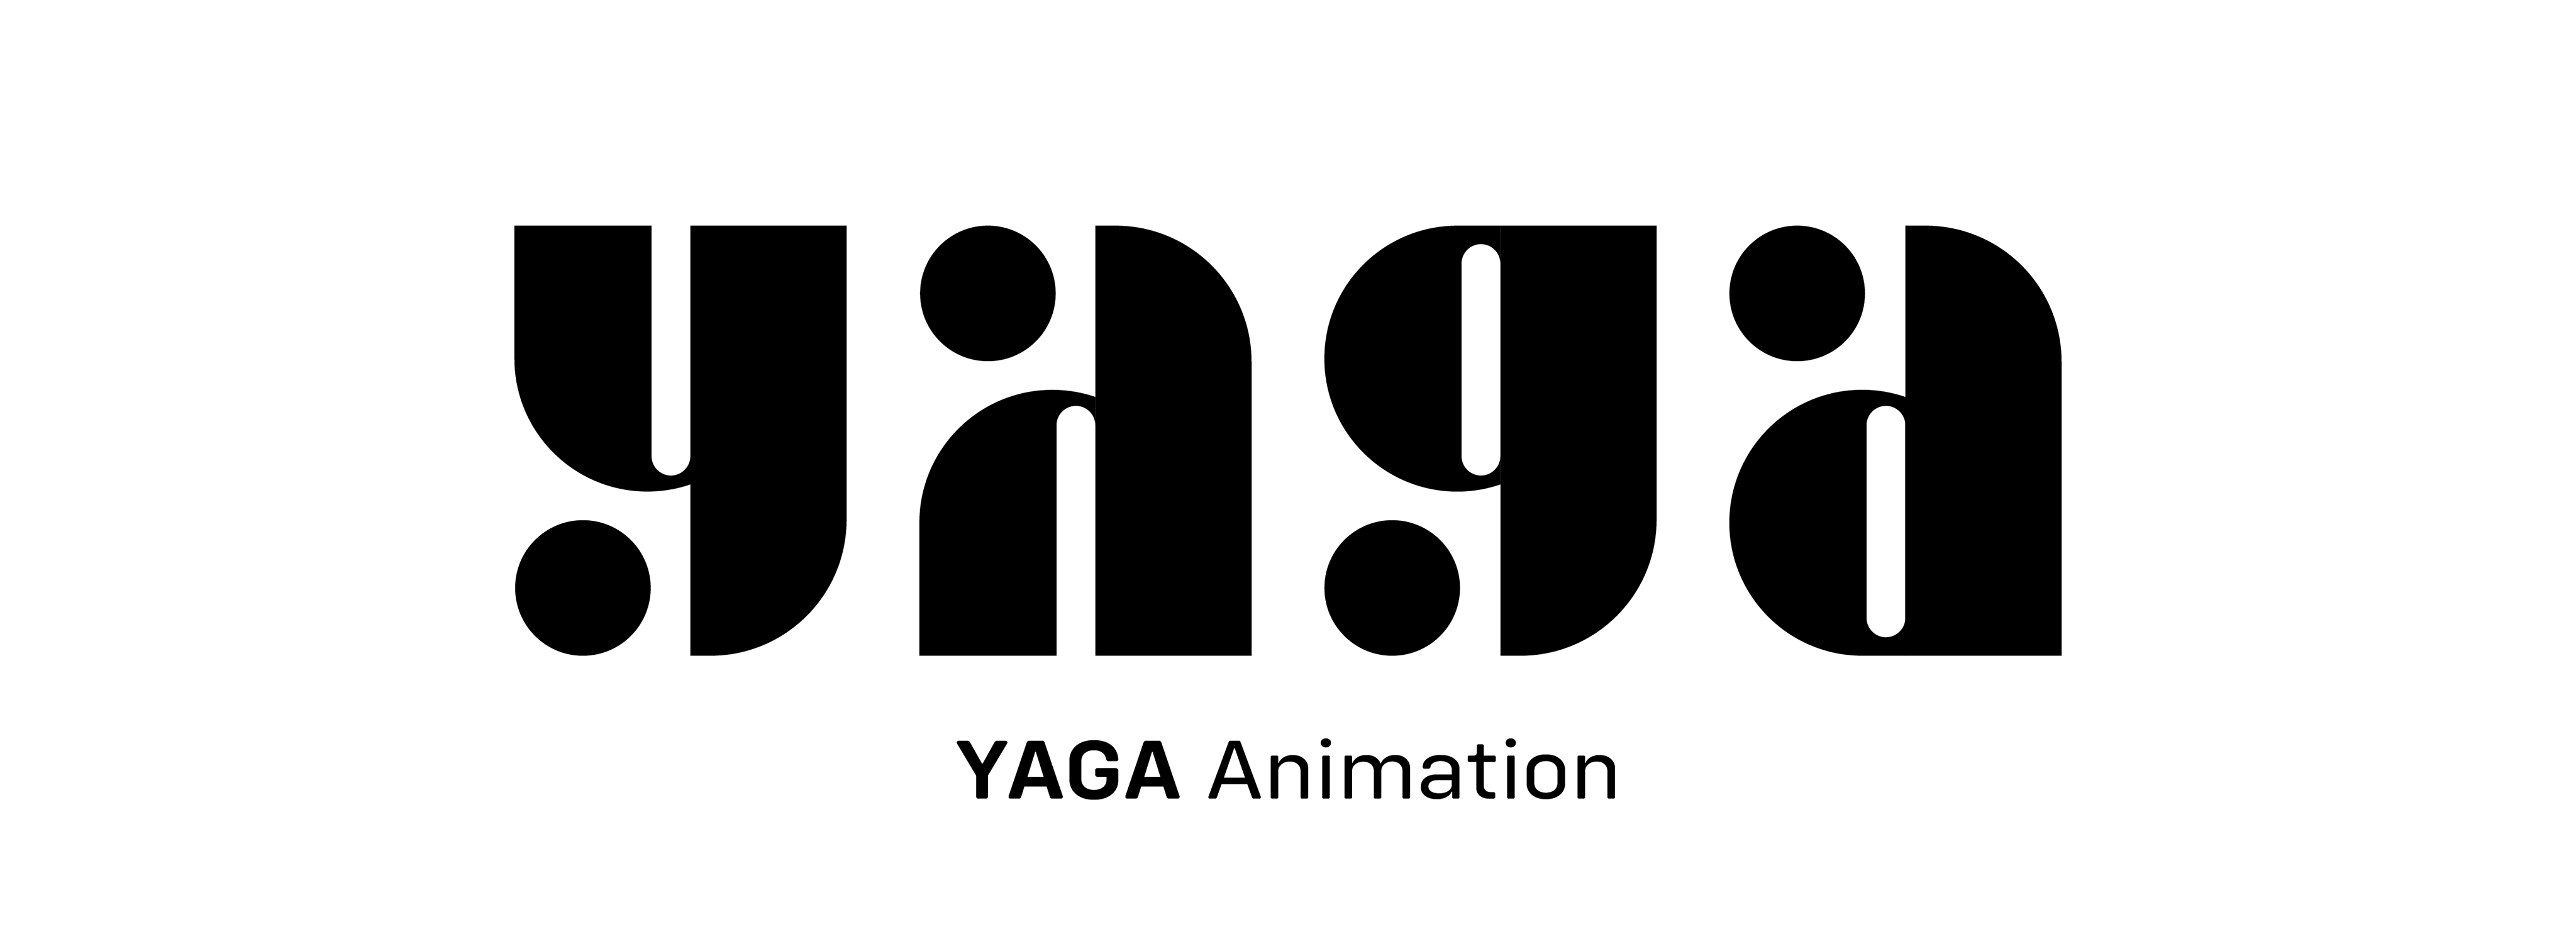 animation yaga